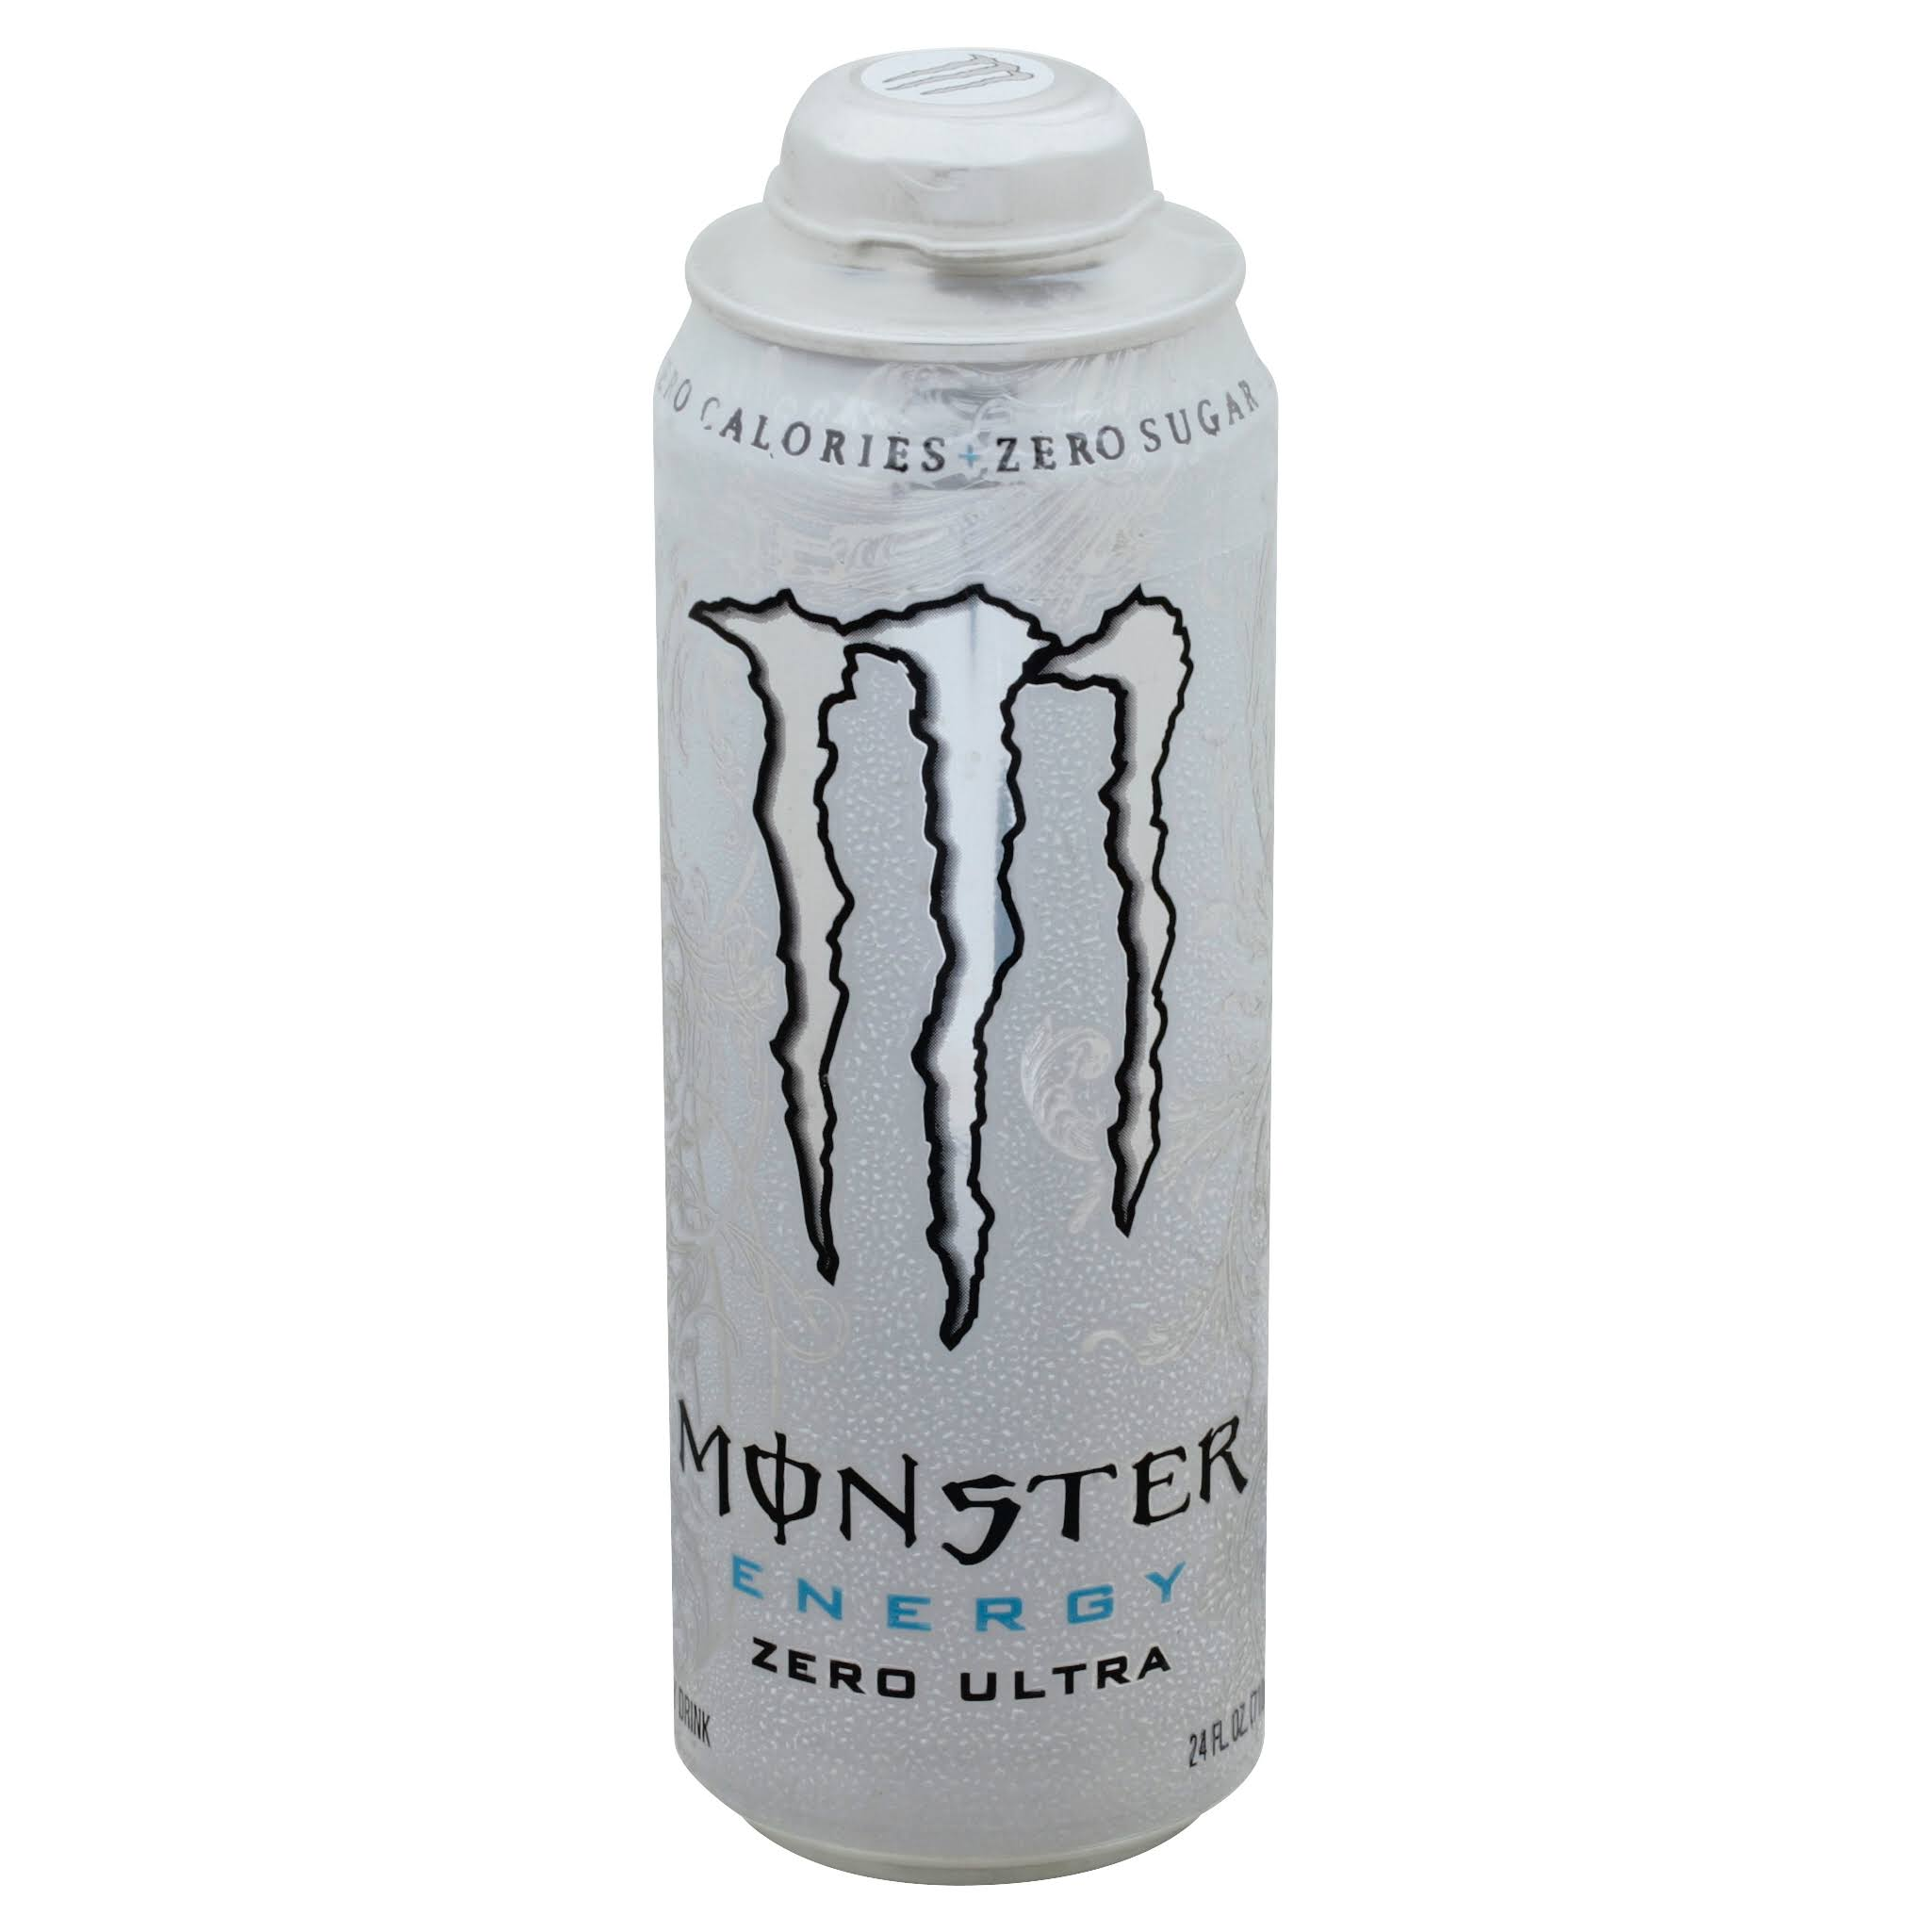 Monster Energy Energy Drink, Zero Ultra - 24 fl oz